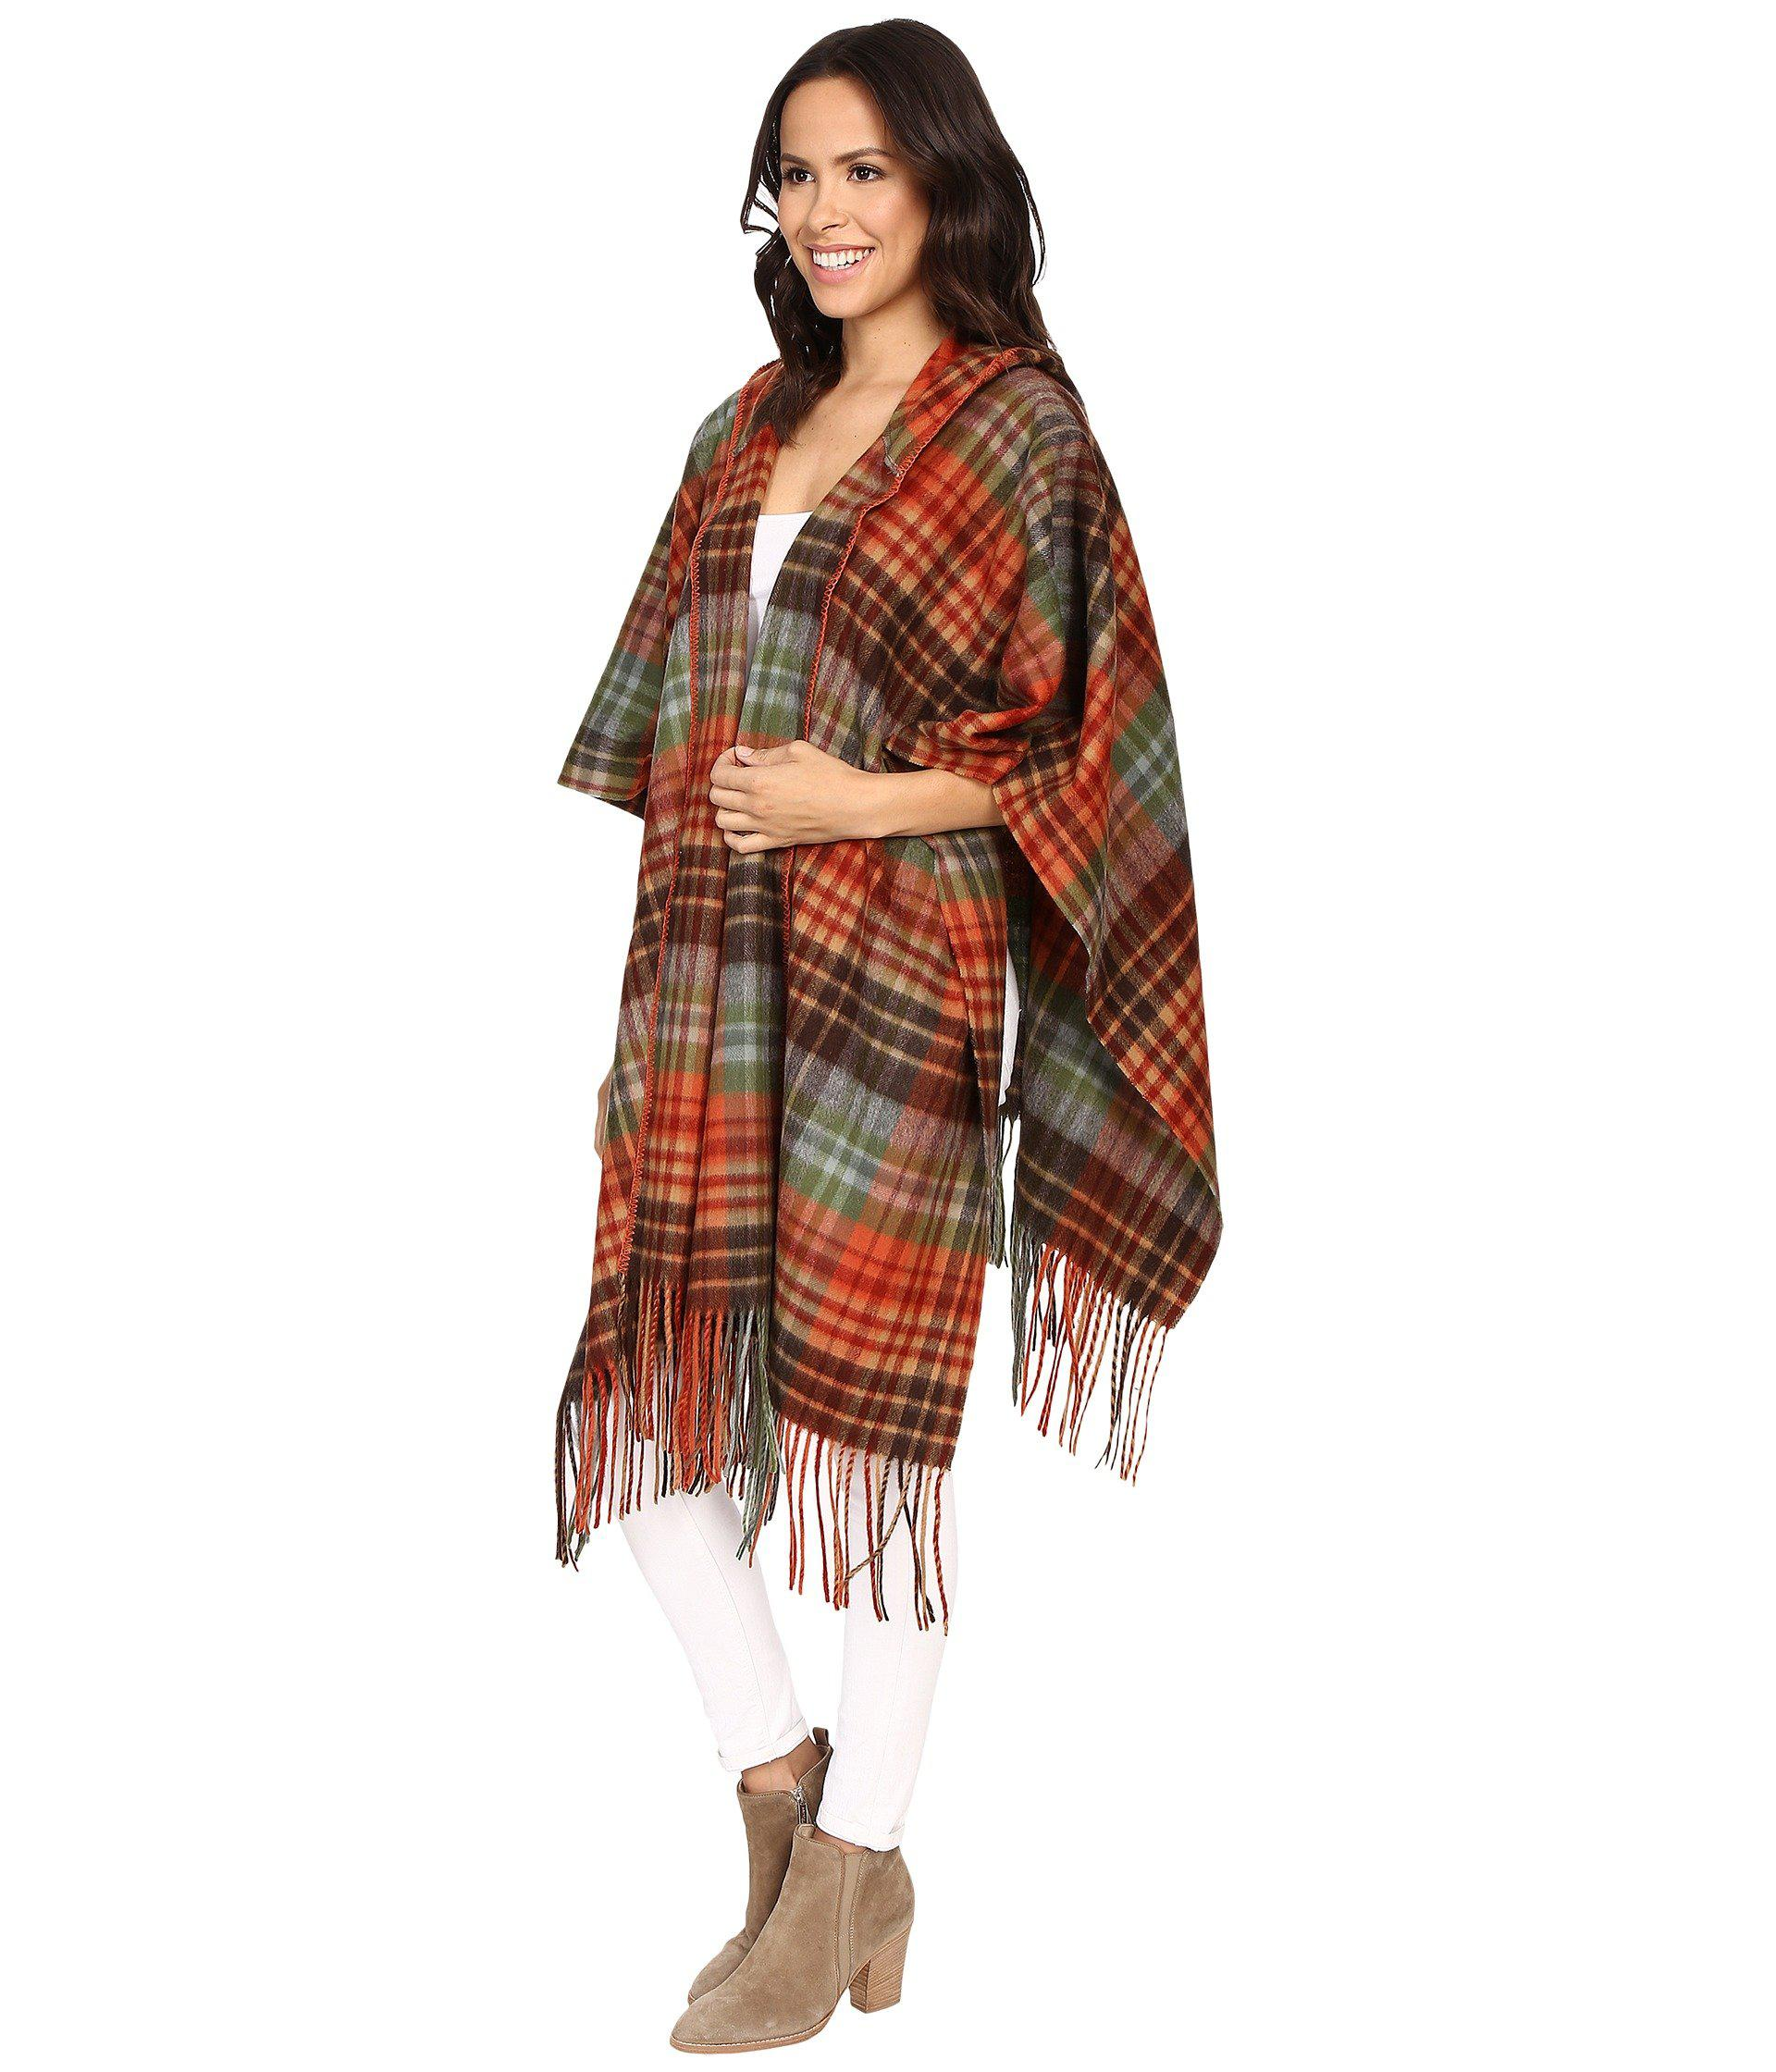 a689ef6760 Lyst - Pendleton Hooded Blanket Shawl (great Smoky Mountains Park ...